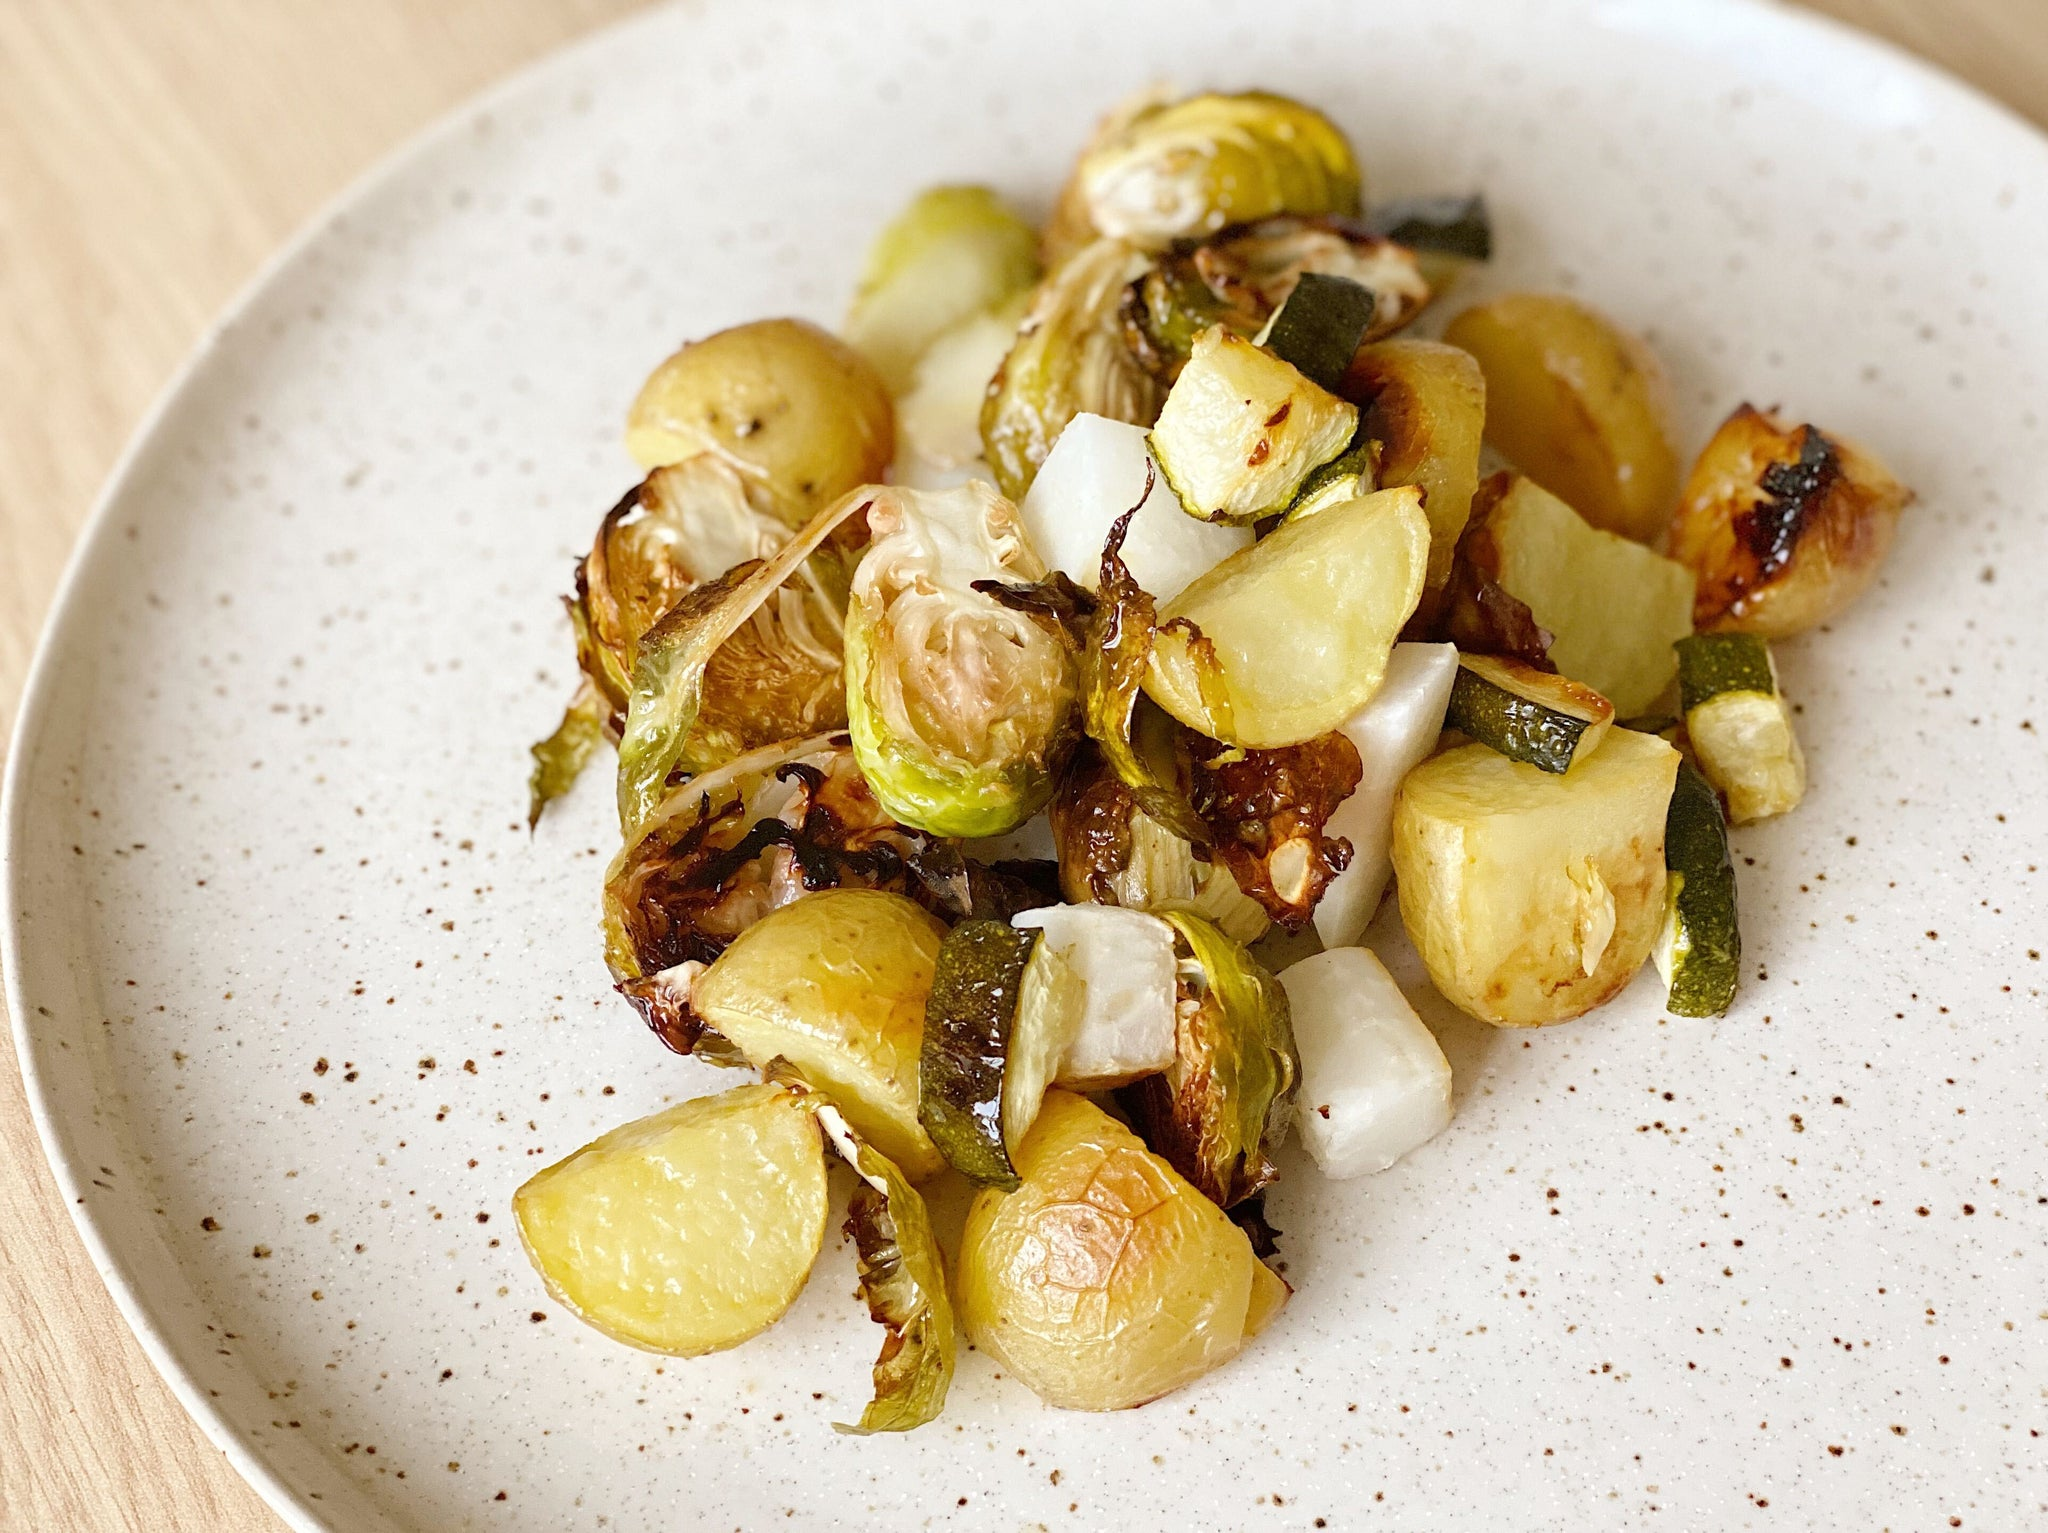 Summer Balsamic Roasted Root Vegetables